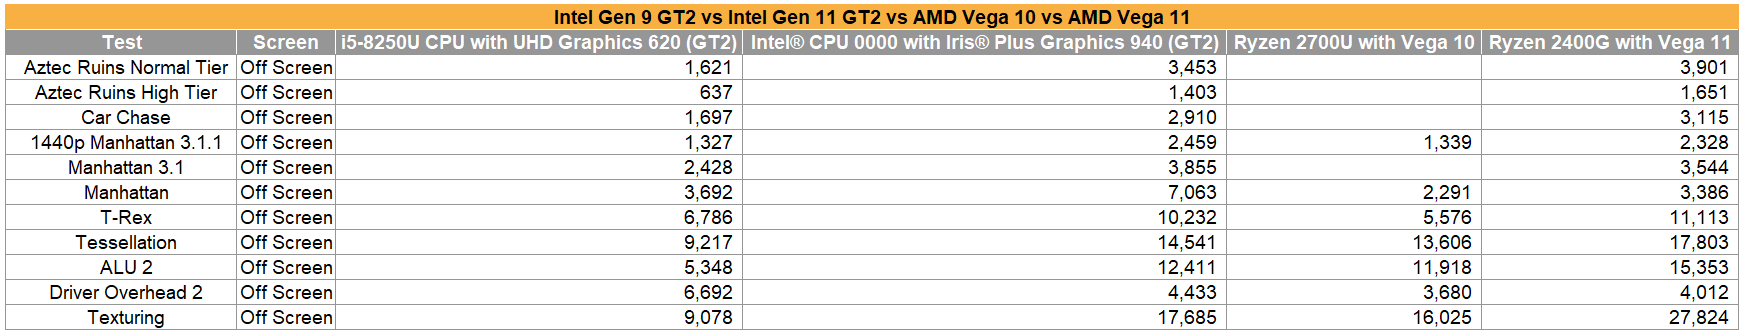 採用Gen 11圖形架構的GPU Iris Plus Graphics 940測試曝光 - 匹敵Vega 11顯示 - XFastest - Intel-GPU-Iris-Plus-Graphics-940-With-Gen-11-Graphics-Performance-Benchmarks_ver.png